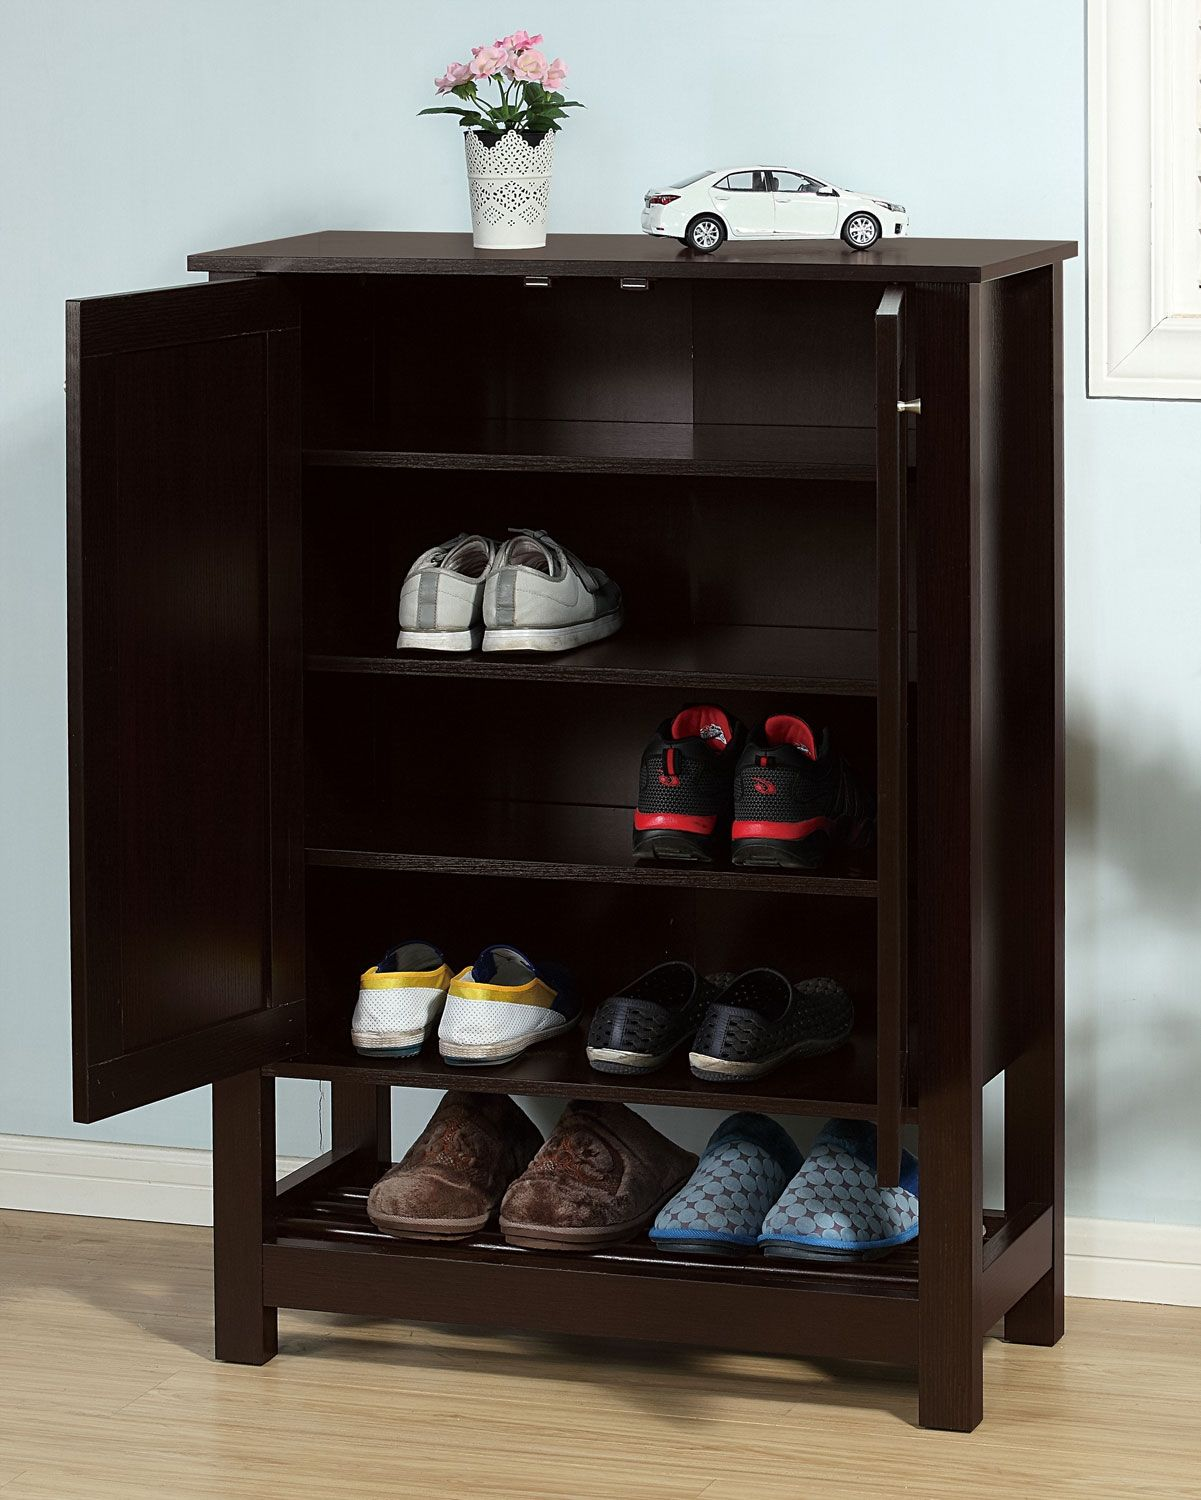 Discover how attractive storage can be with